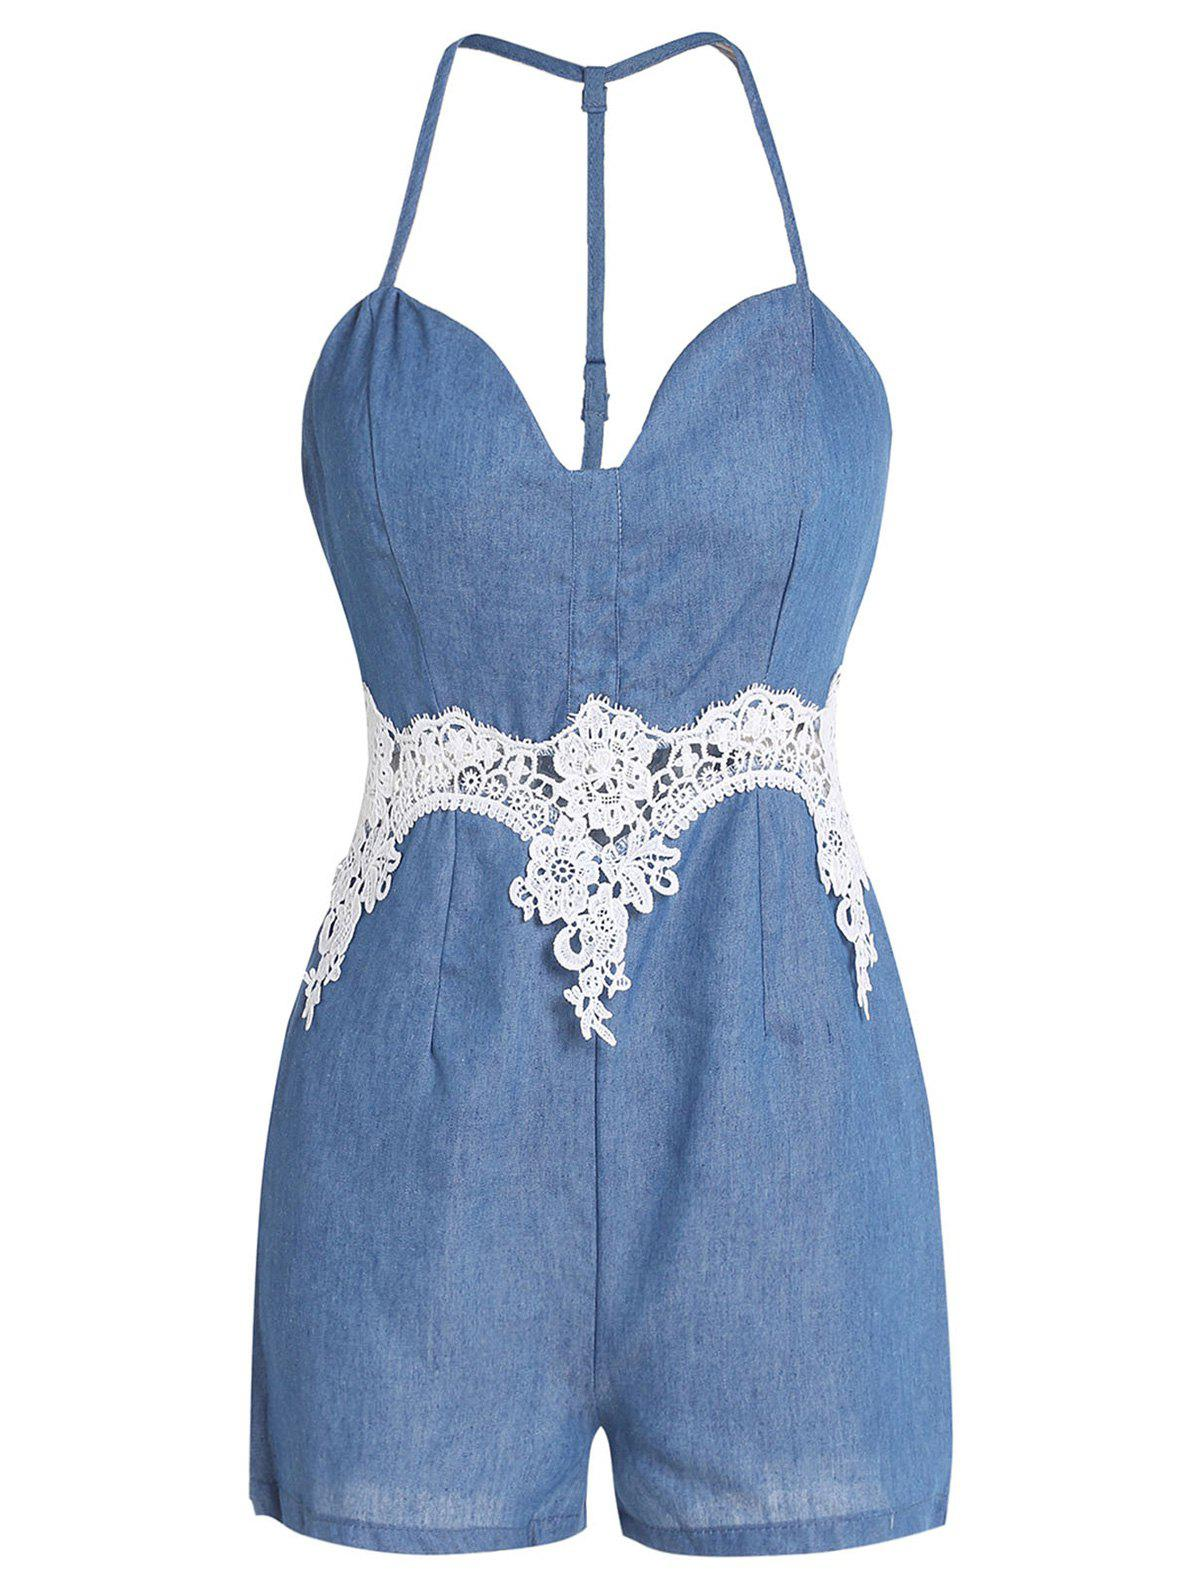 Alluring Spaghetti Strap Hollow Out Lace Spliced Women's Romper - BLUE S